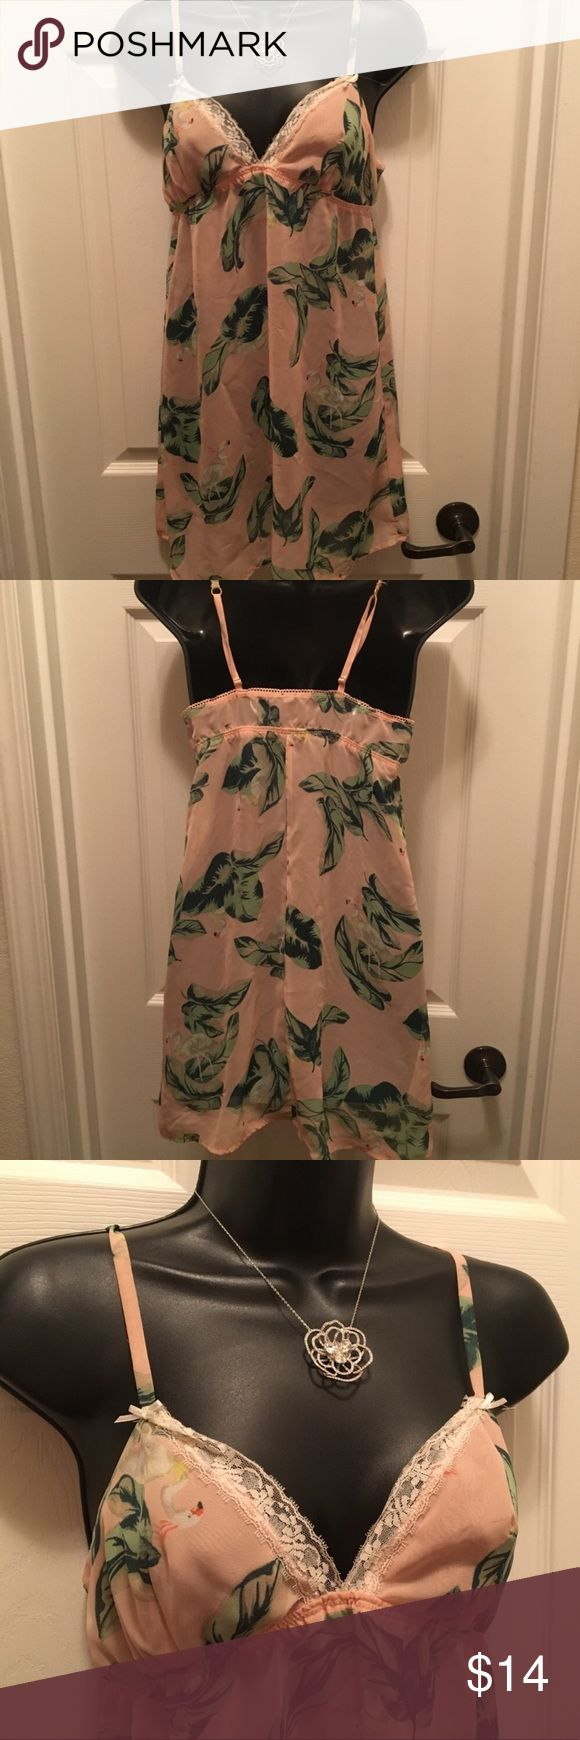 """Sz Small ❤️ White Flamingo Tropical Sheer Chemise Sz S The Webster Miami at Target Sheer Tropical Chemise. Size small. Pit to pit = 17"""". Excellent condition. Gorgeous tropical print with white flamingos. Straps are adjustable. The Webster at Target Intimates & Sleepwear Chemises & Slips"""